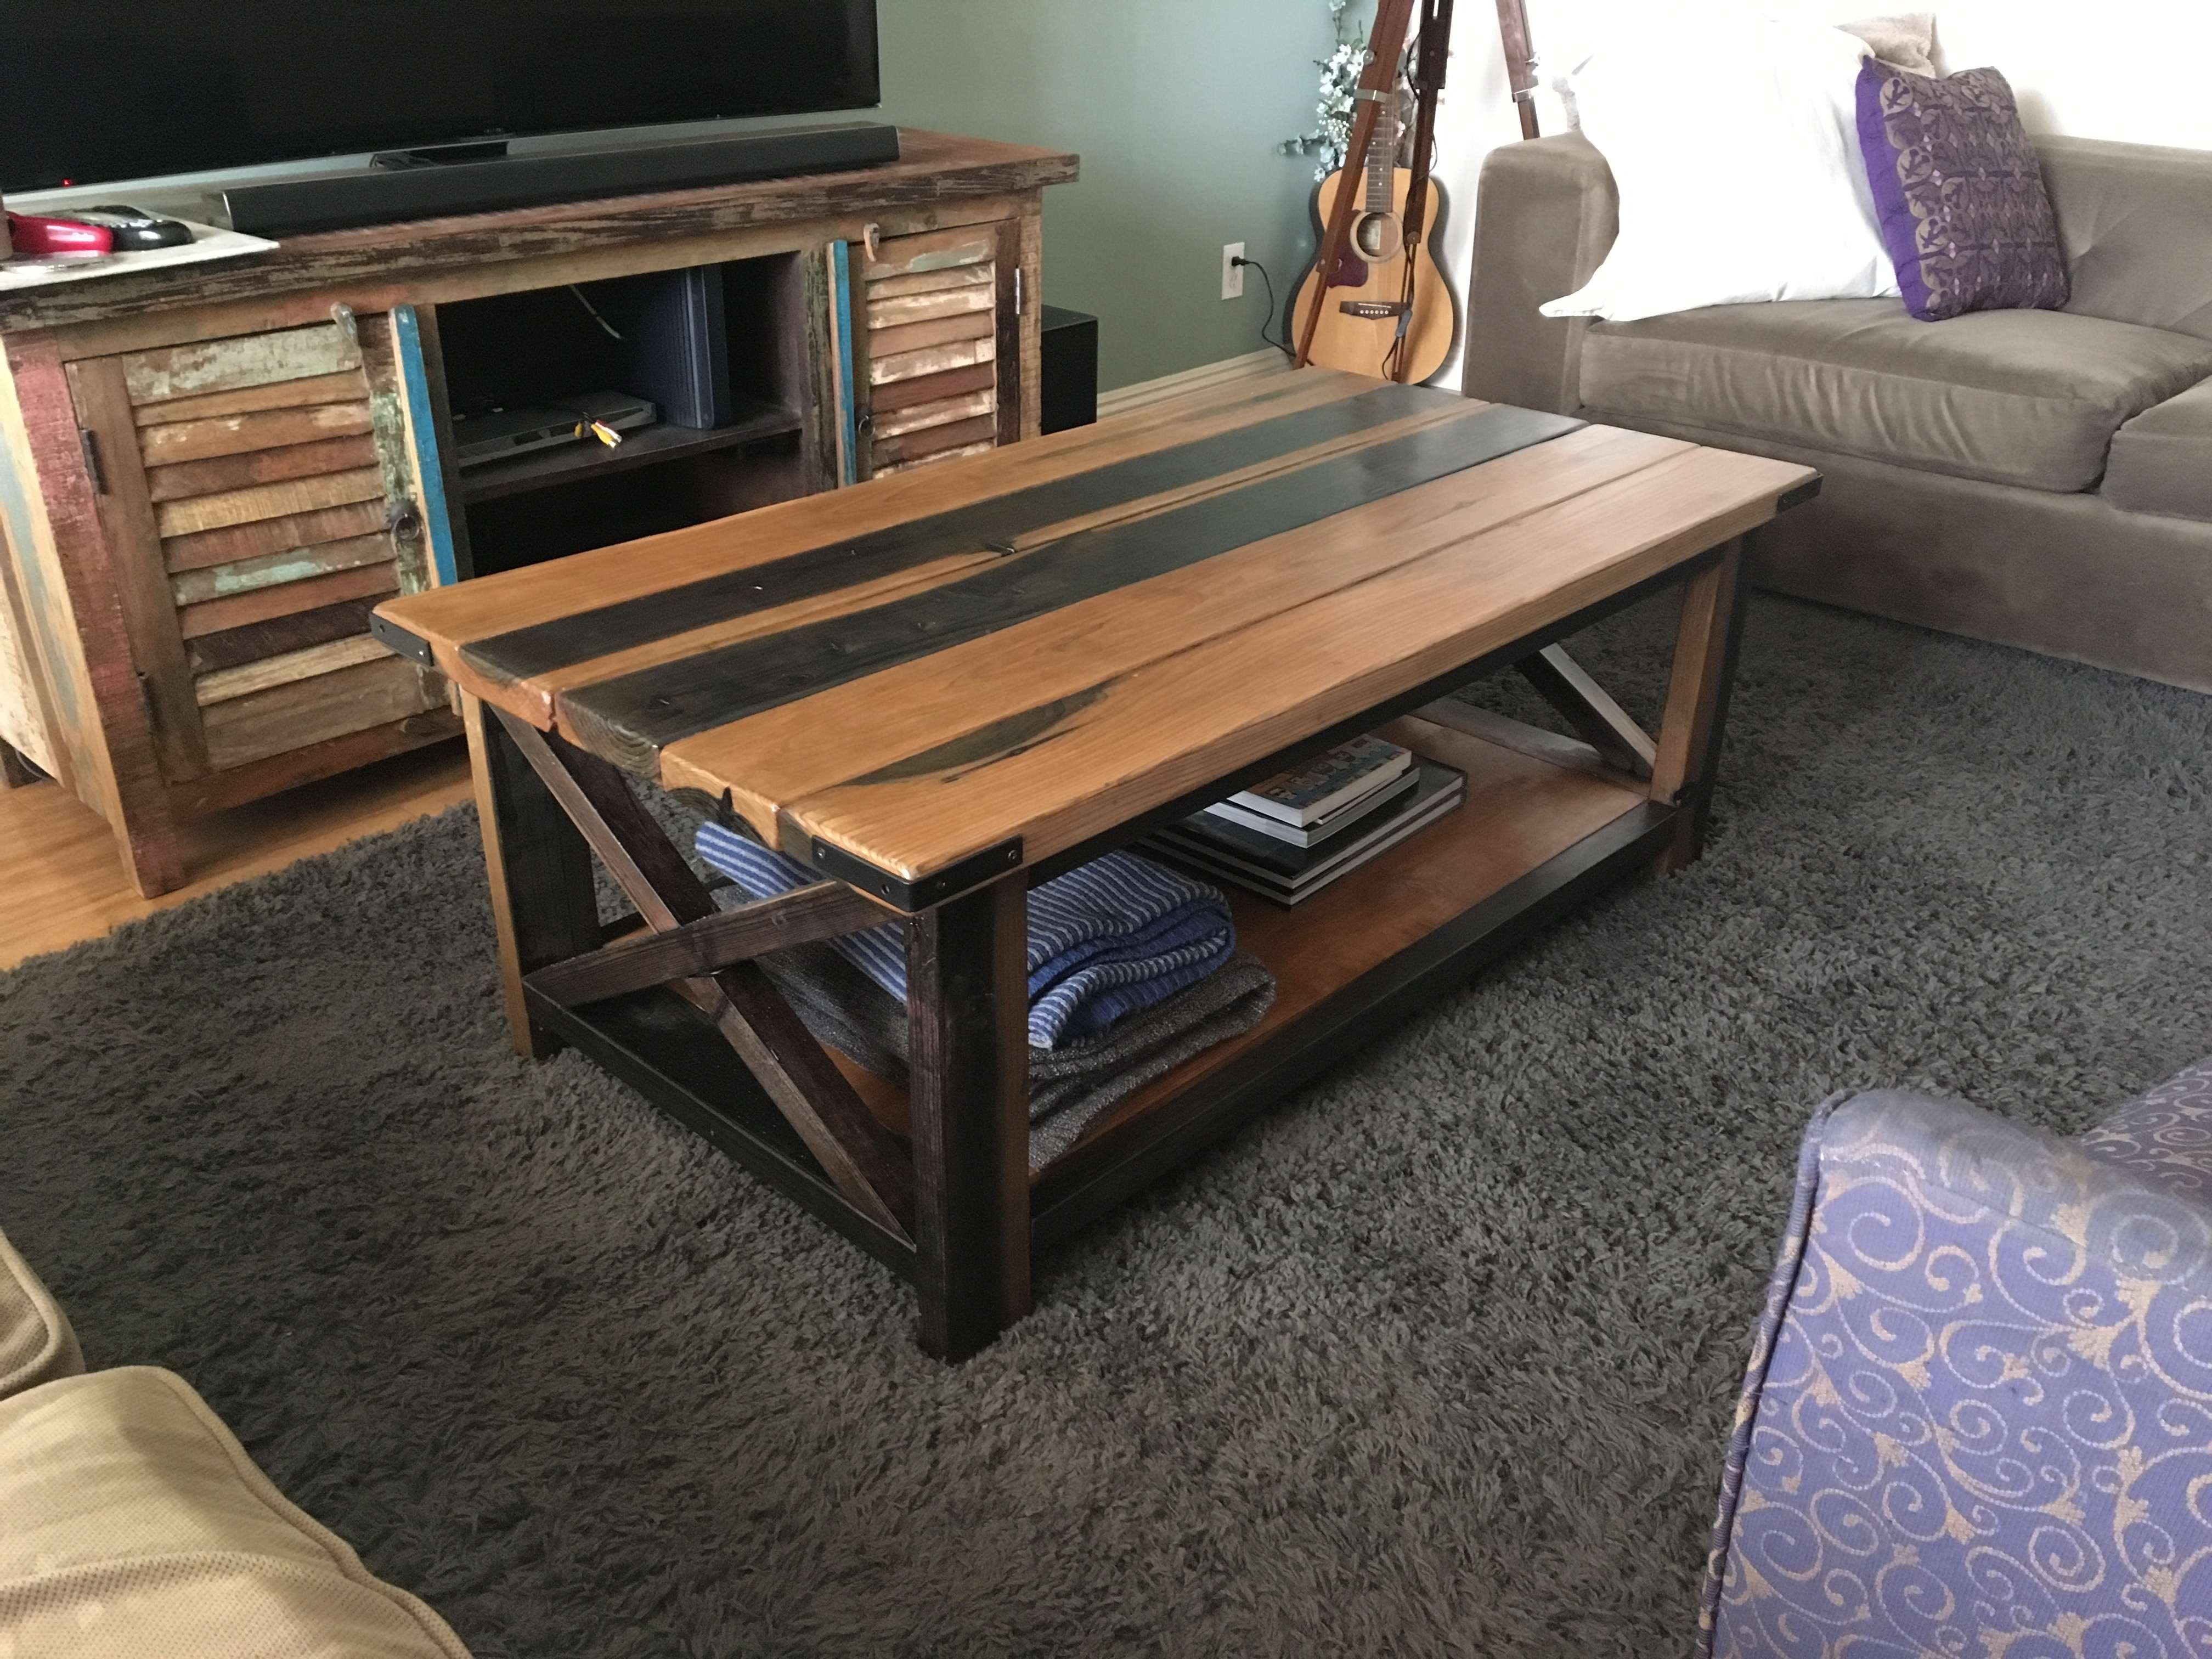 Diy Rustic Coffee Table – Album On Imgur Regarding Widely Used Rustic Coffee Tables (View 19 of 20)